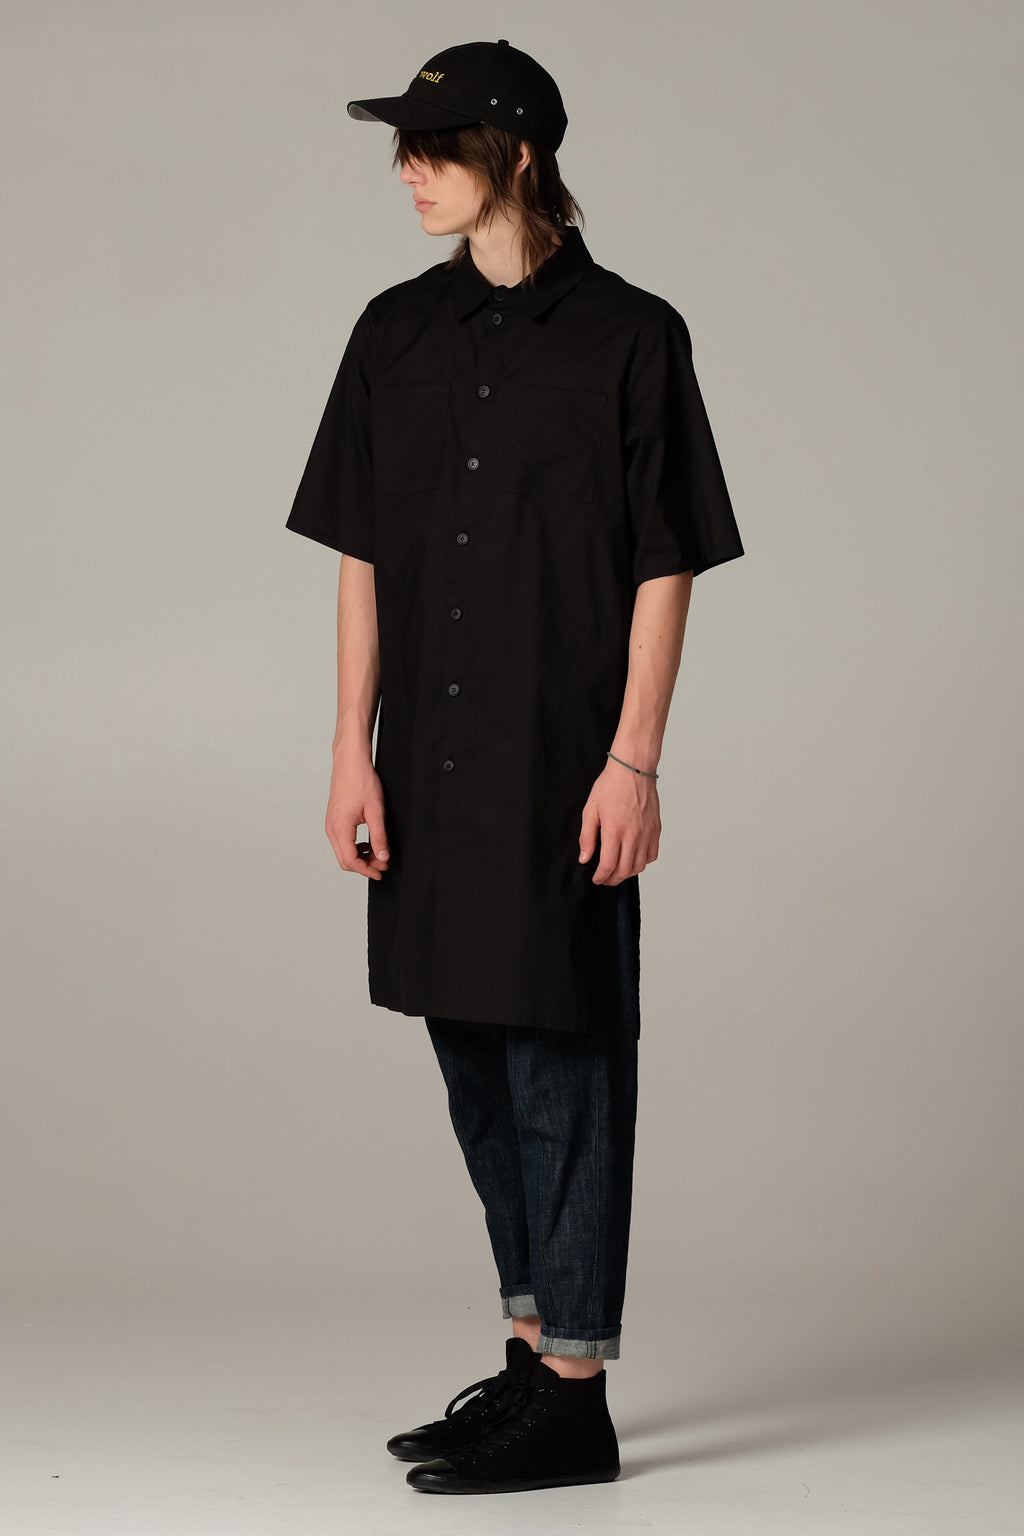 OUTSIDER dress black - One Wolf